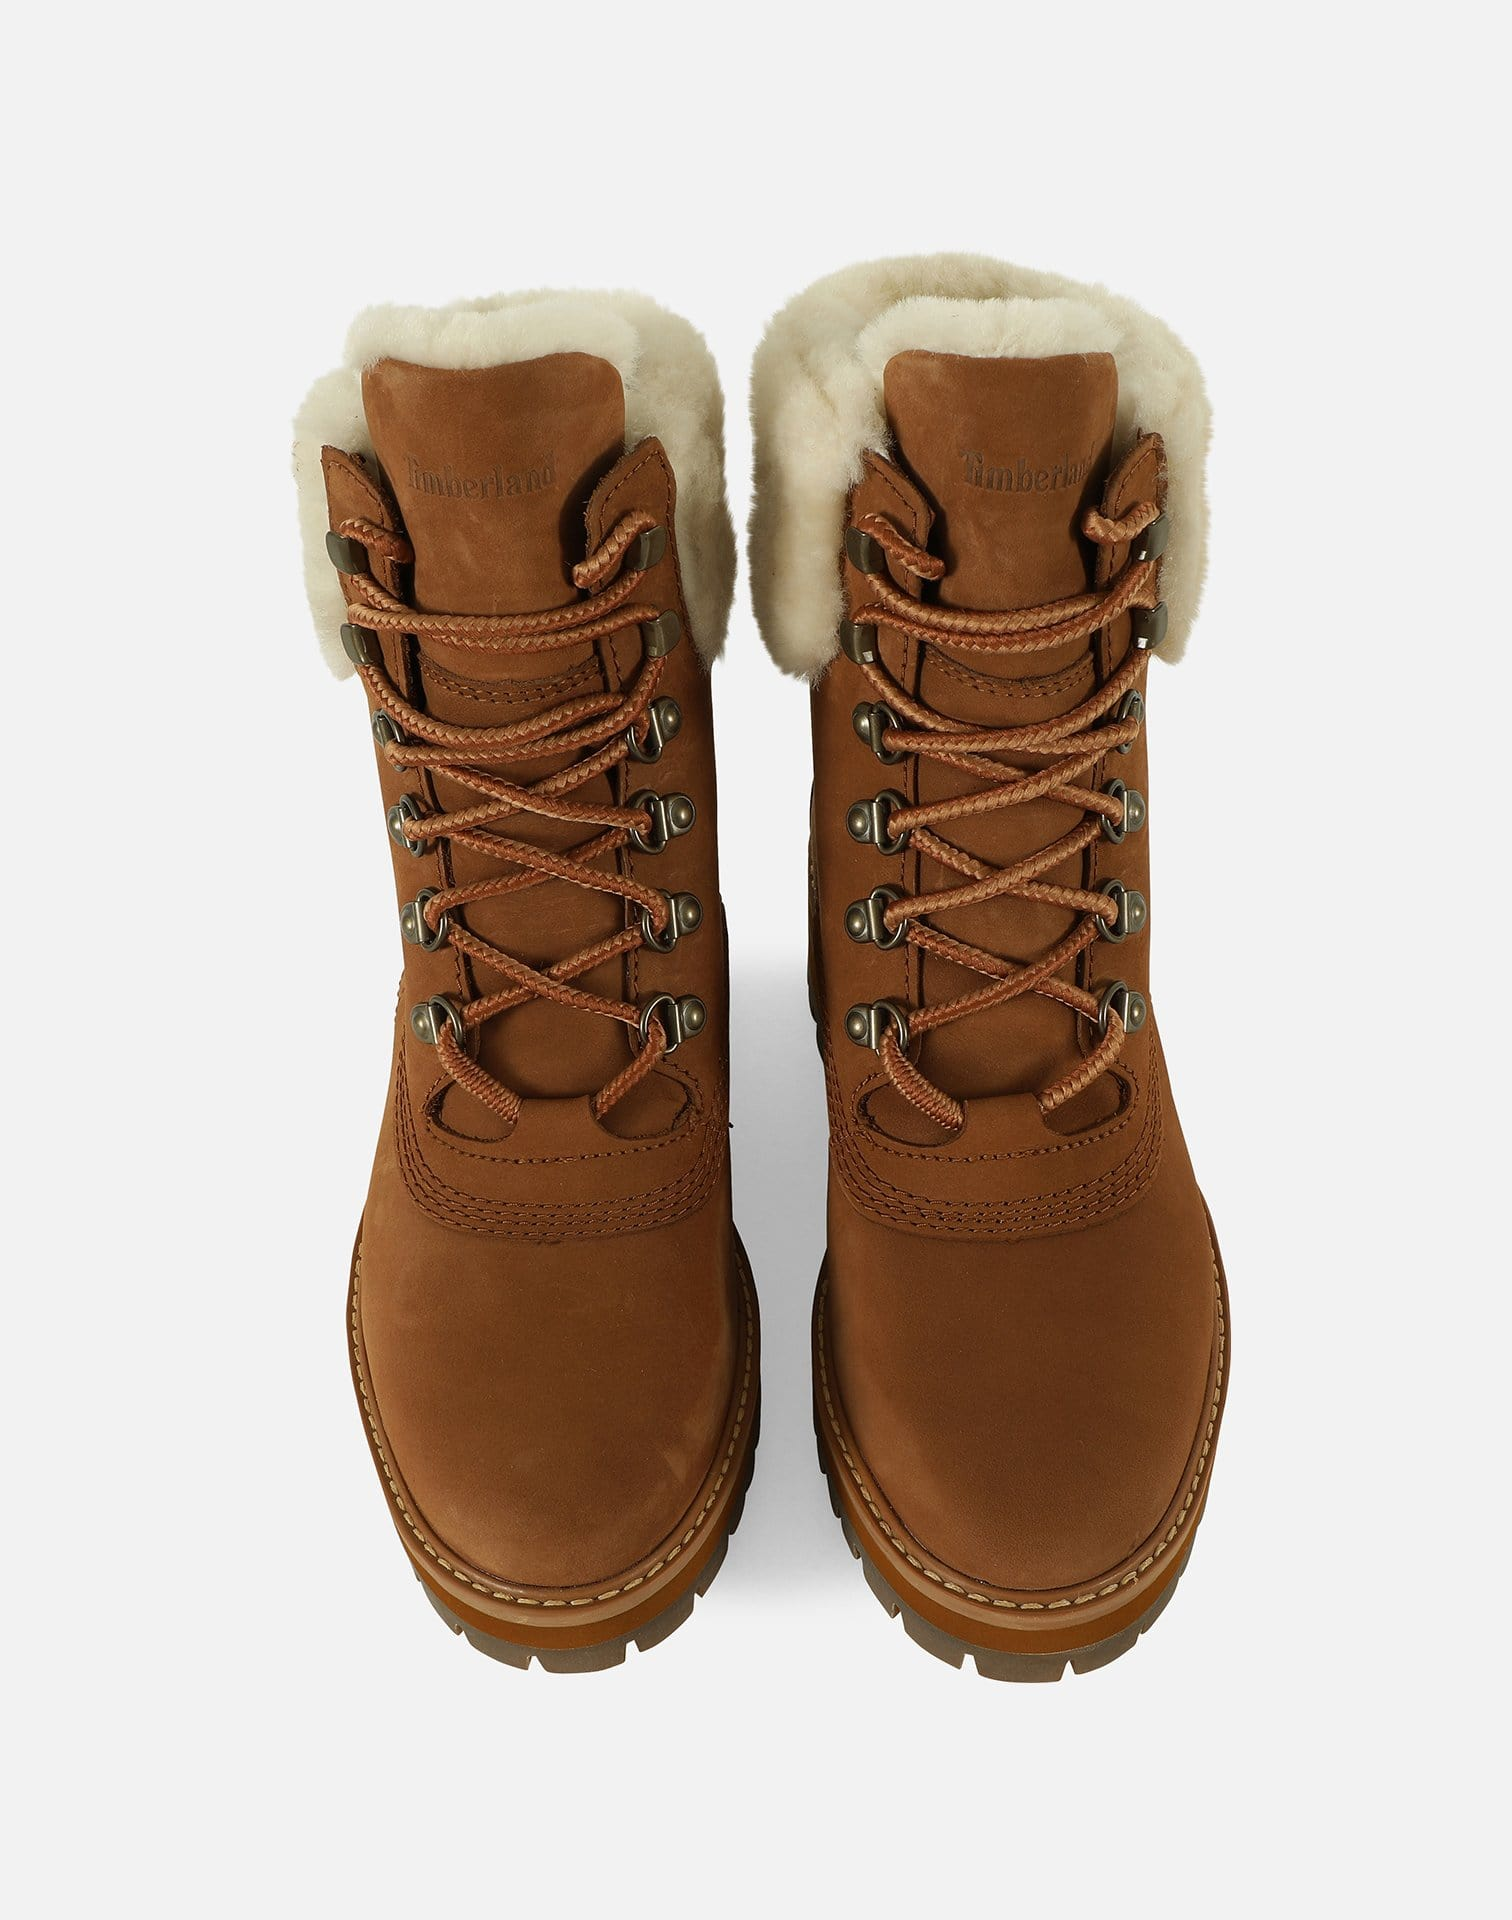 COURMAYEUR VALLEY SHEARLING-LINED BOOTS